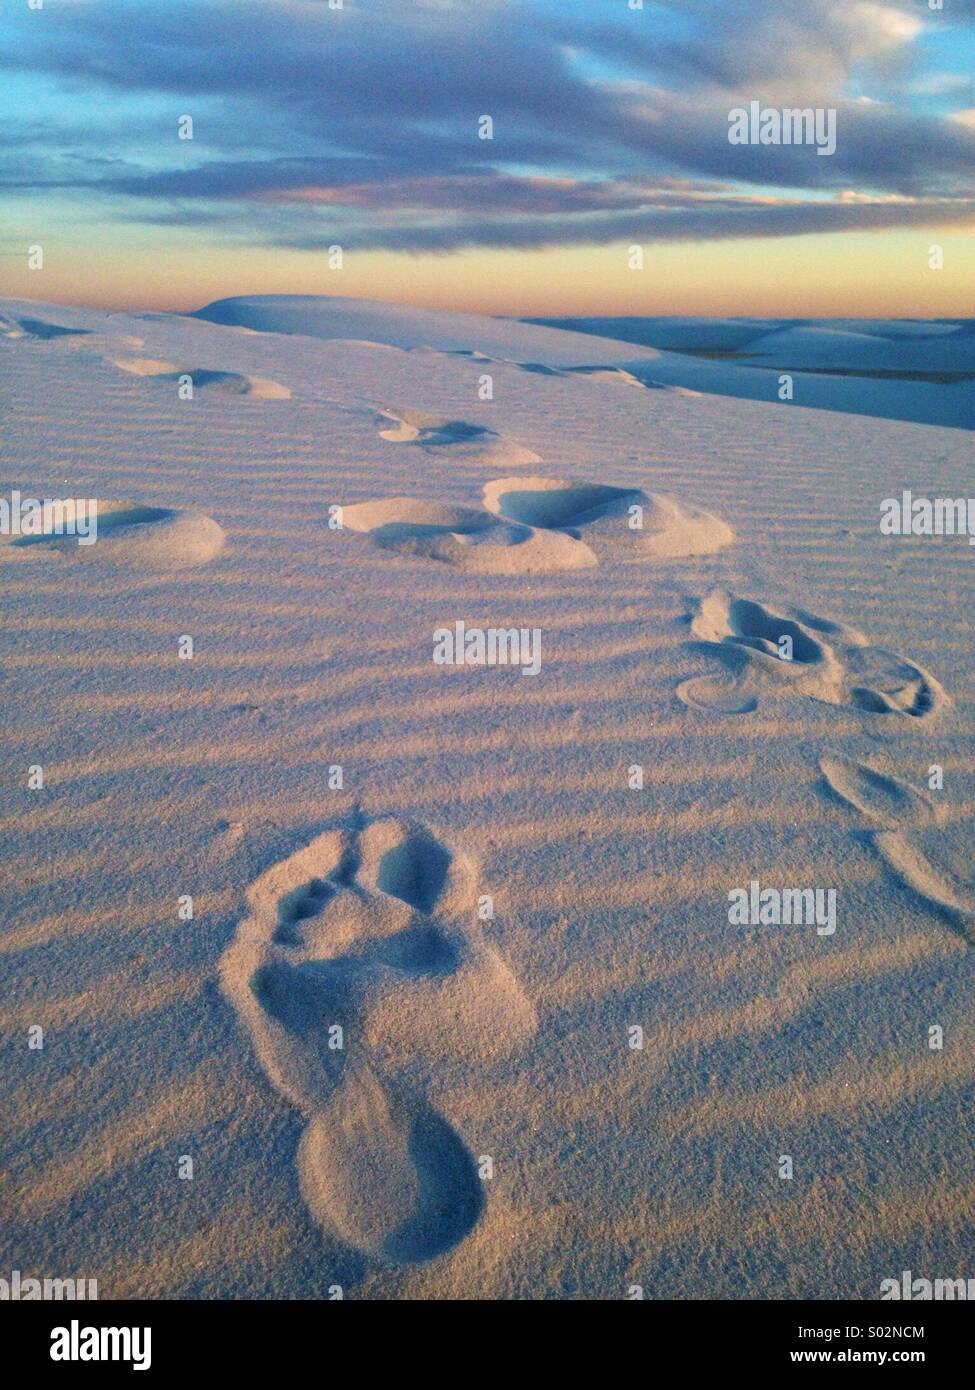 Footprint at White Sands National Monument - Stock Image